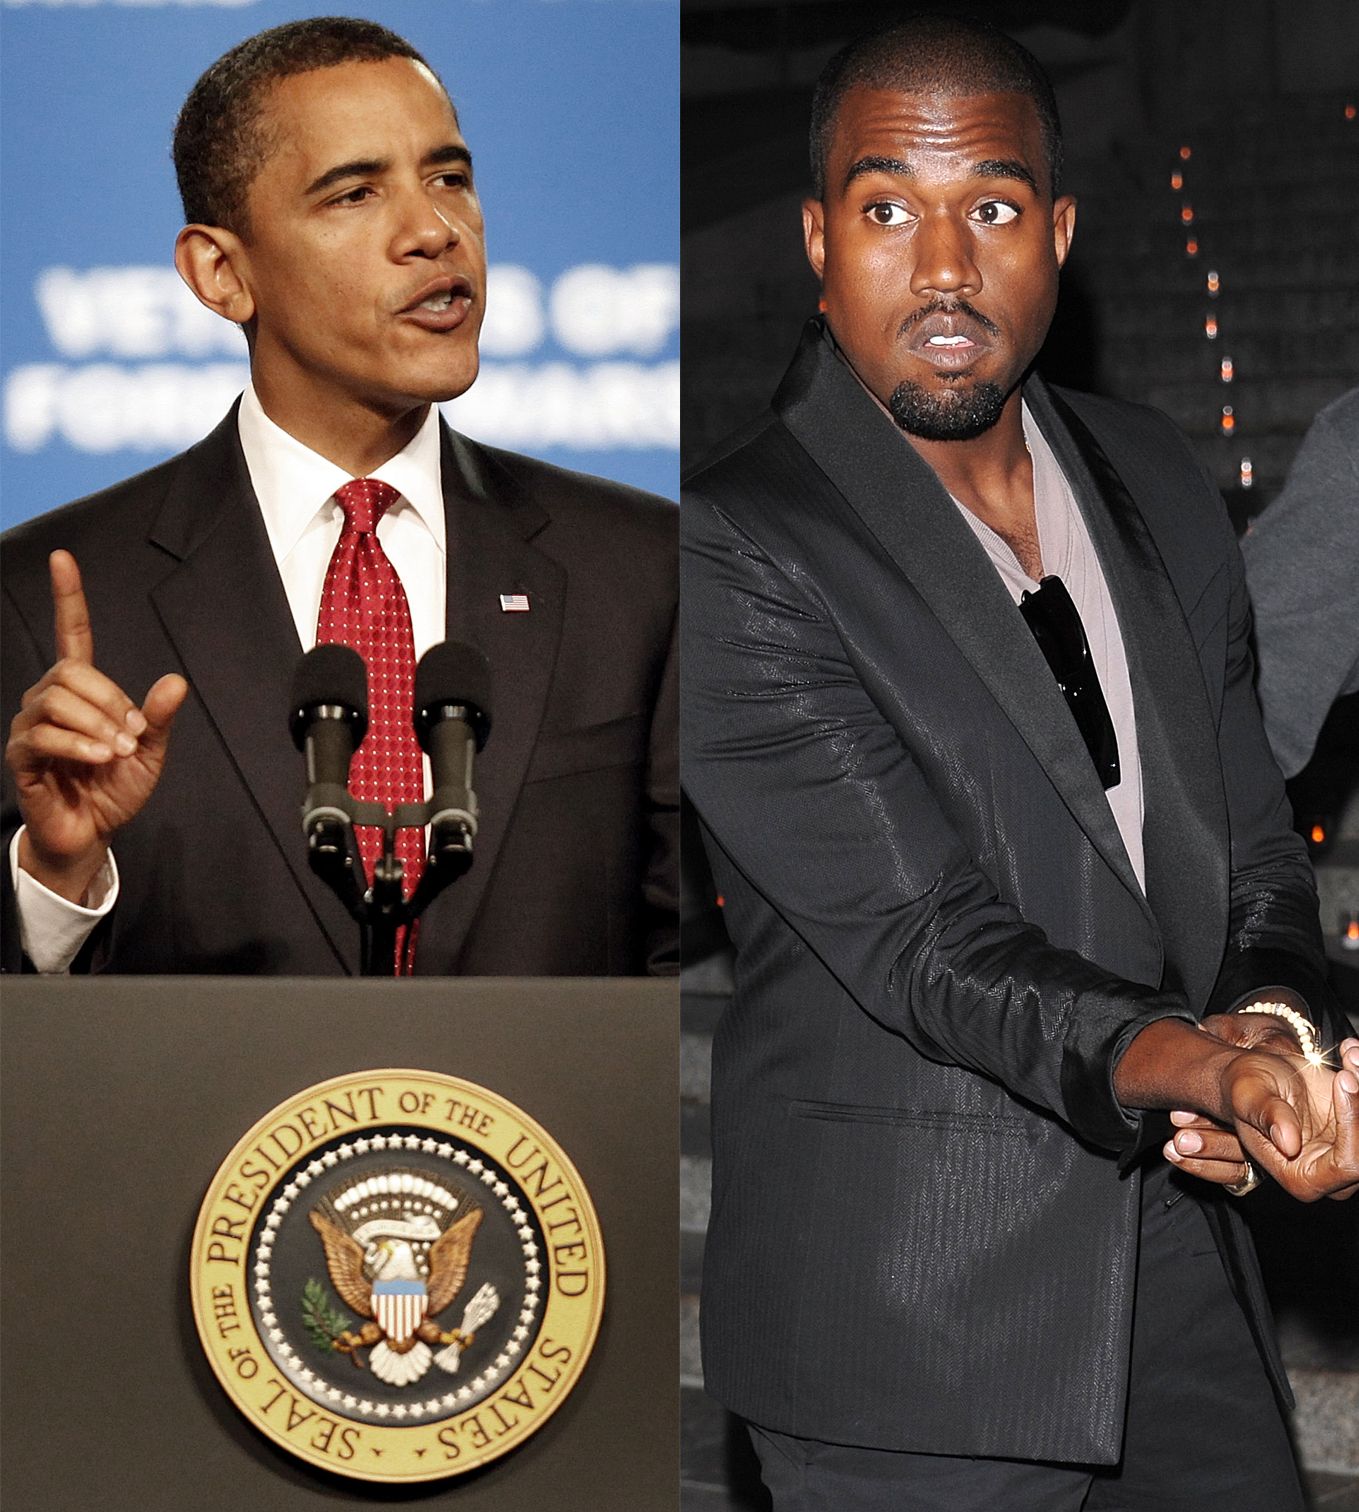 Barack Obama and Kayne West